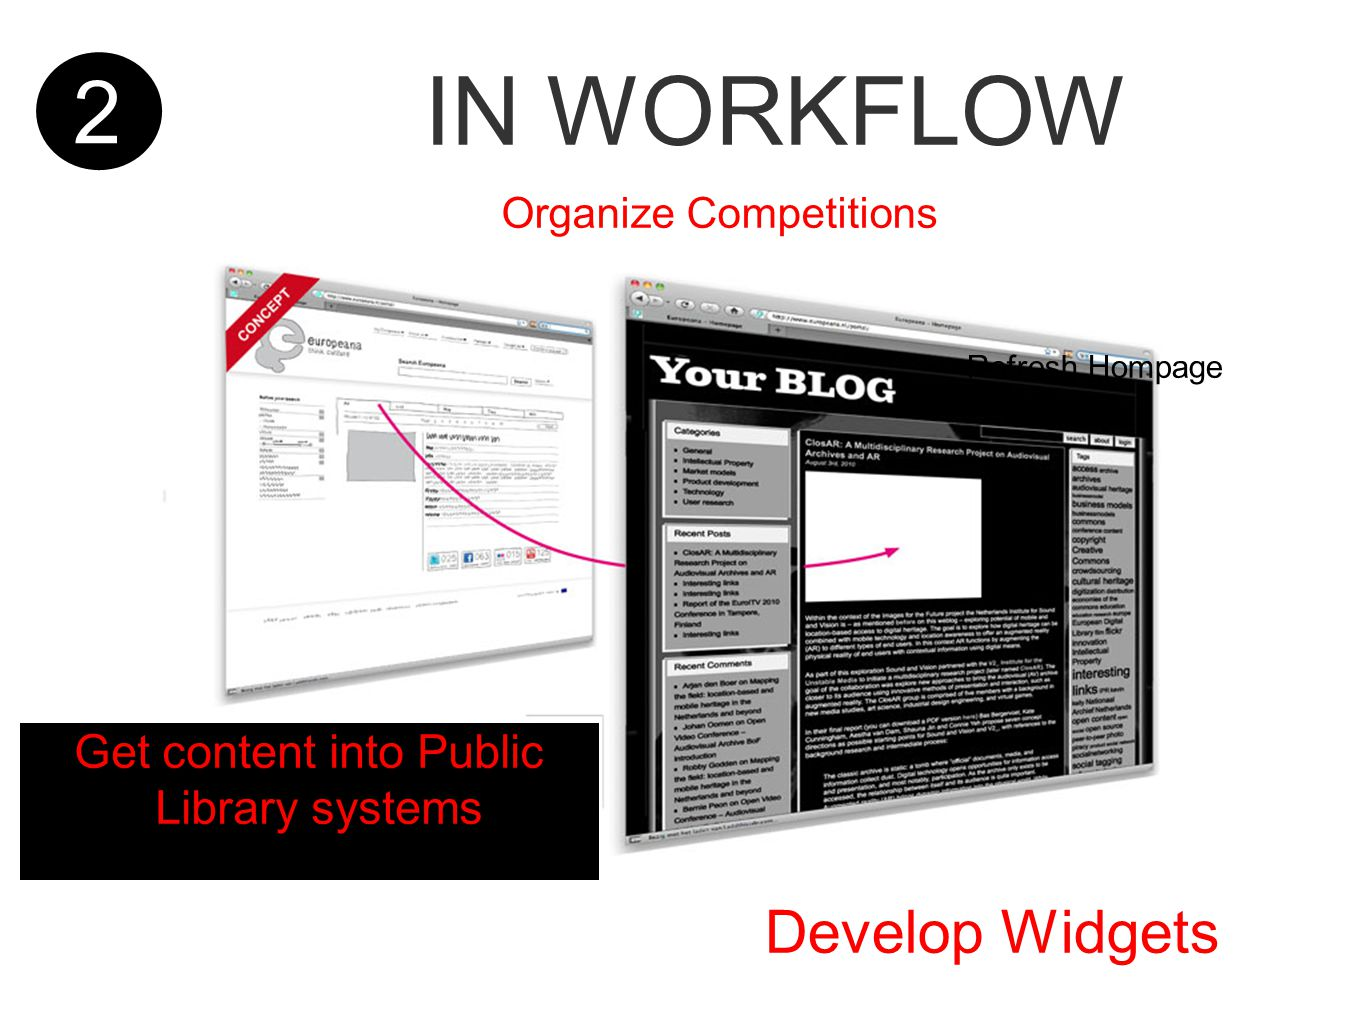 2 IN WORKFLOW Refresh Hompage Get content into Public Library systems Organize Competitions Develop Widgets